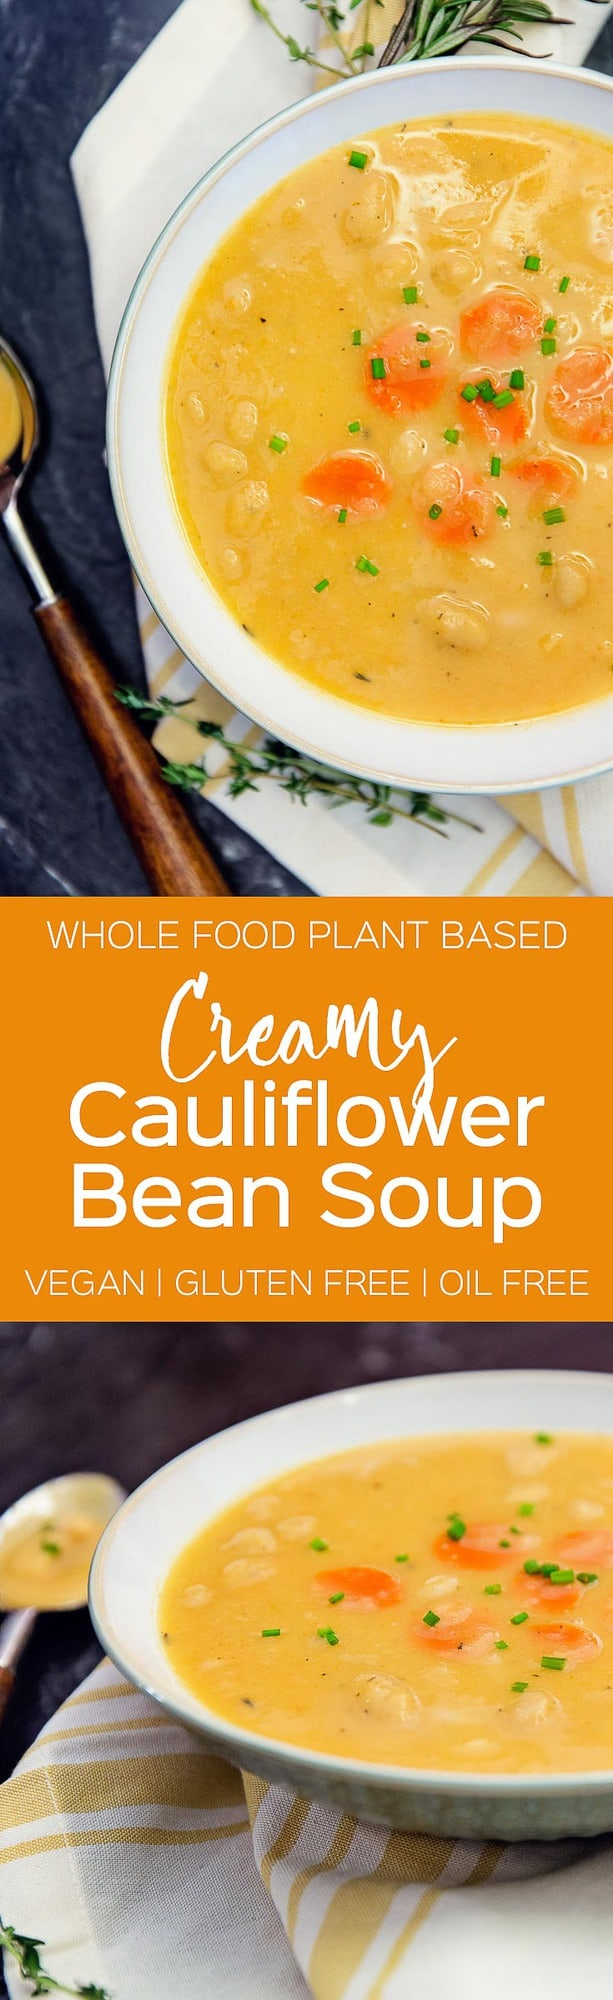 creamy cauliflower bean soup, cauliflower bean soup, bean soup, creamy cauliflower soup, creamy soup, creamy bean soup, bean soup, cauliflower soup, soup, stew, vegan creamy cauliflower bean soup, vegan cauliflower bean soup, vegan bean soup, vegan creamy cauliflower soup, vegan creamy soup, vegan creamy bean soup, vegan bean soup, vegan cauliflower soup, vegan soup, vegan stew, vegan, vegetarian creamy cauliflower bean soup, vegetarian cauliflower bean soup, vegetarian bean soup, vegetarian creamy cauliflower soup, vegetarian creamy soup, vegetarian creamy bean soup, vegetarian bean soup, vegetarian cauliflower soup, vegetarian soup, vegetarian stew, vegetarian, whole food plant based creamy cauliflower bean soup, whole food plant based cauliflower bean soup, whole food plant based bean soup, whole food plant based creamy cauliflower soup, whole food plant based creamy soup, whole food plant based creamy bean soup, vegetarian bean soup, whole food plant based cauliflower soup, whole food plant based soup, whole food plant based stew, whole food plant based, wfpb creamy cauliflower bean soup, wfpb cauliflower bean soup, wfpb bean soup, wfpb creamy cauliflower soup, wfpb creamy soup, wfpb creamy bean soup, wfpb bean soup, wfpb cauliflower soup, wfpb soup, wfpb stew, wfpb, healthy creamy cauliflower bean soup, healthy cauliflower bean soup, healthy bean soup, healthy creamy cauliflower soup, healthy creamy soup, healthy creamy bean soup, healthy bean soup, healthy cauliflower soup, healthy soup, healthy stew, healthy, gluten free soup, gluten free stew, gluten free cauliflower, gluten free bean, gluten free creamy soup, gluten free, oil free, oil free soup, oil free stew, oil free cauliflower, oil free bean